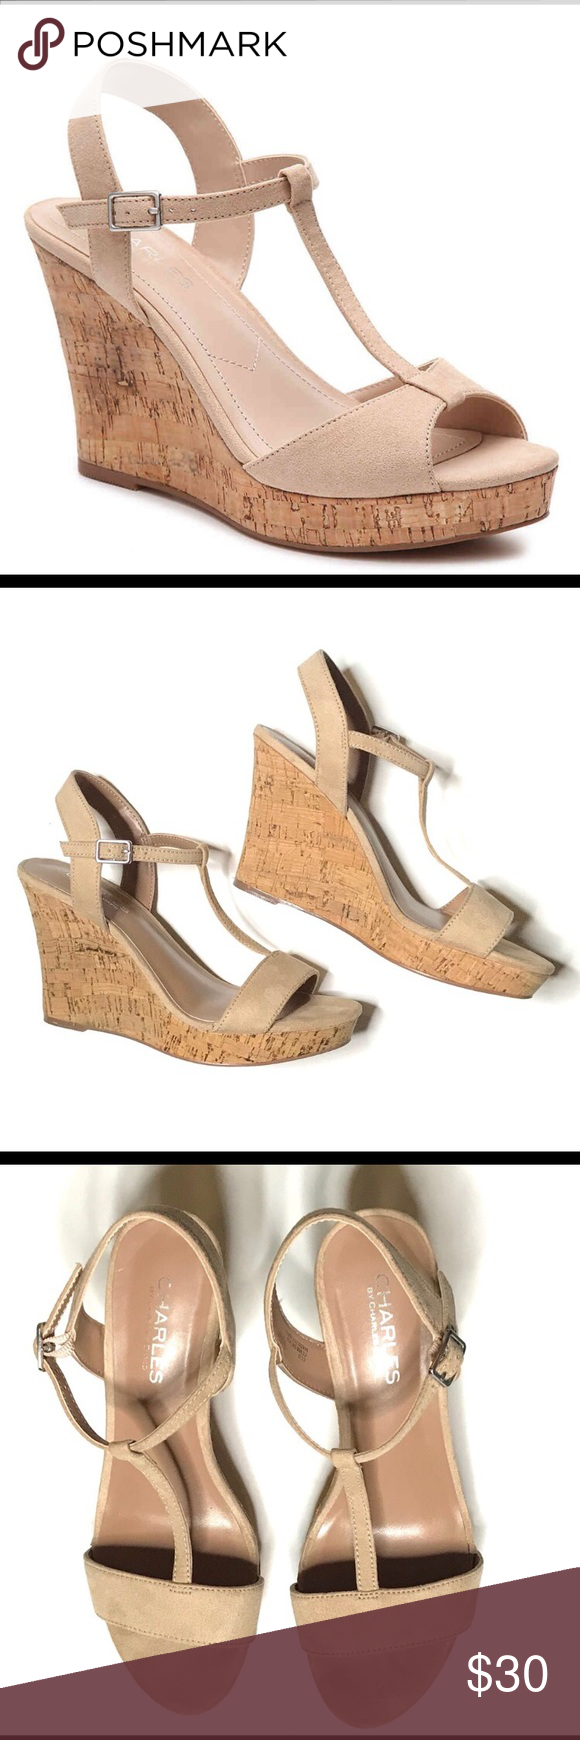 df0ca64362 Charles David | Suede T Strap Cork Wedge Sandals Lucas Wedge sandals from  Charles, by